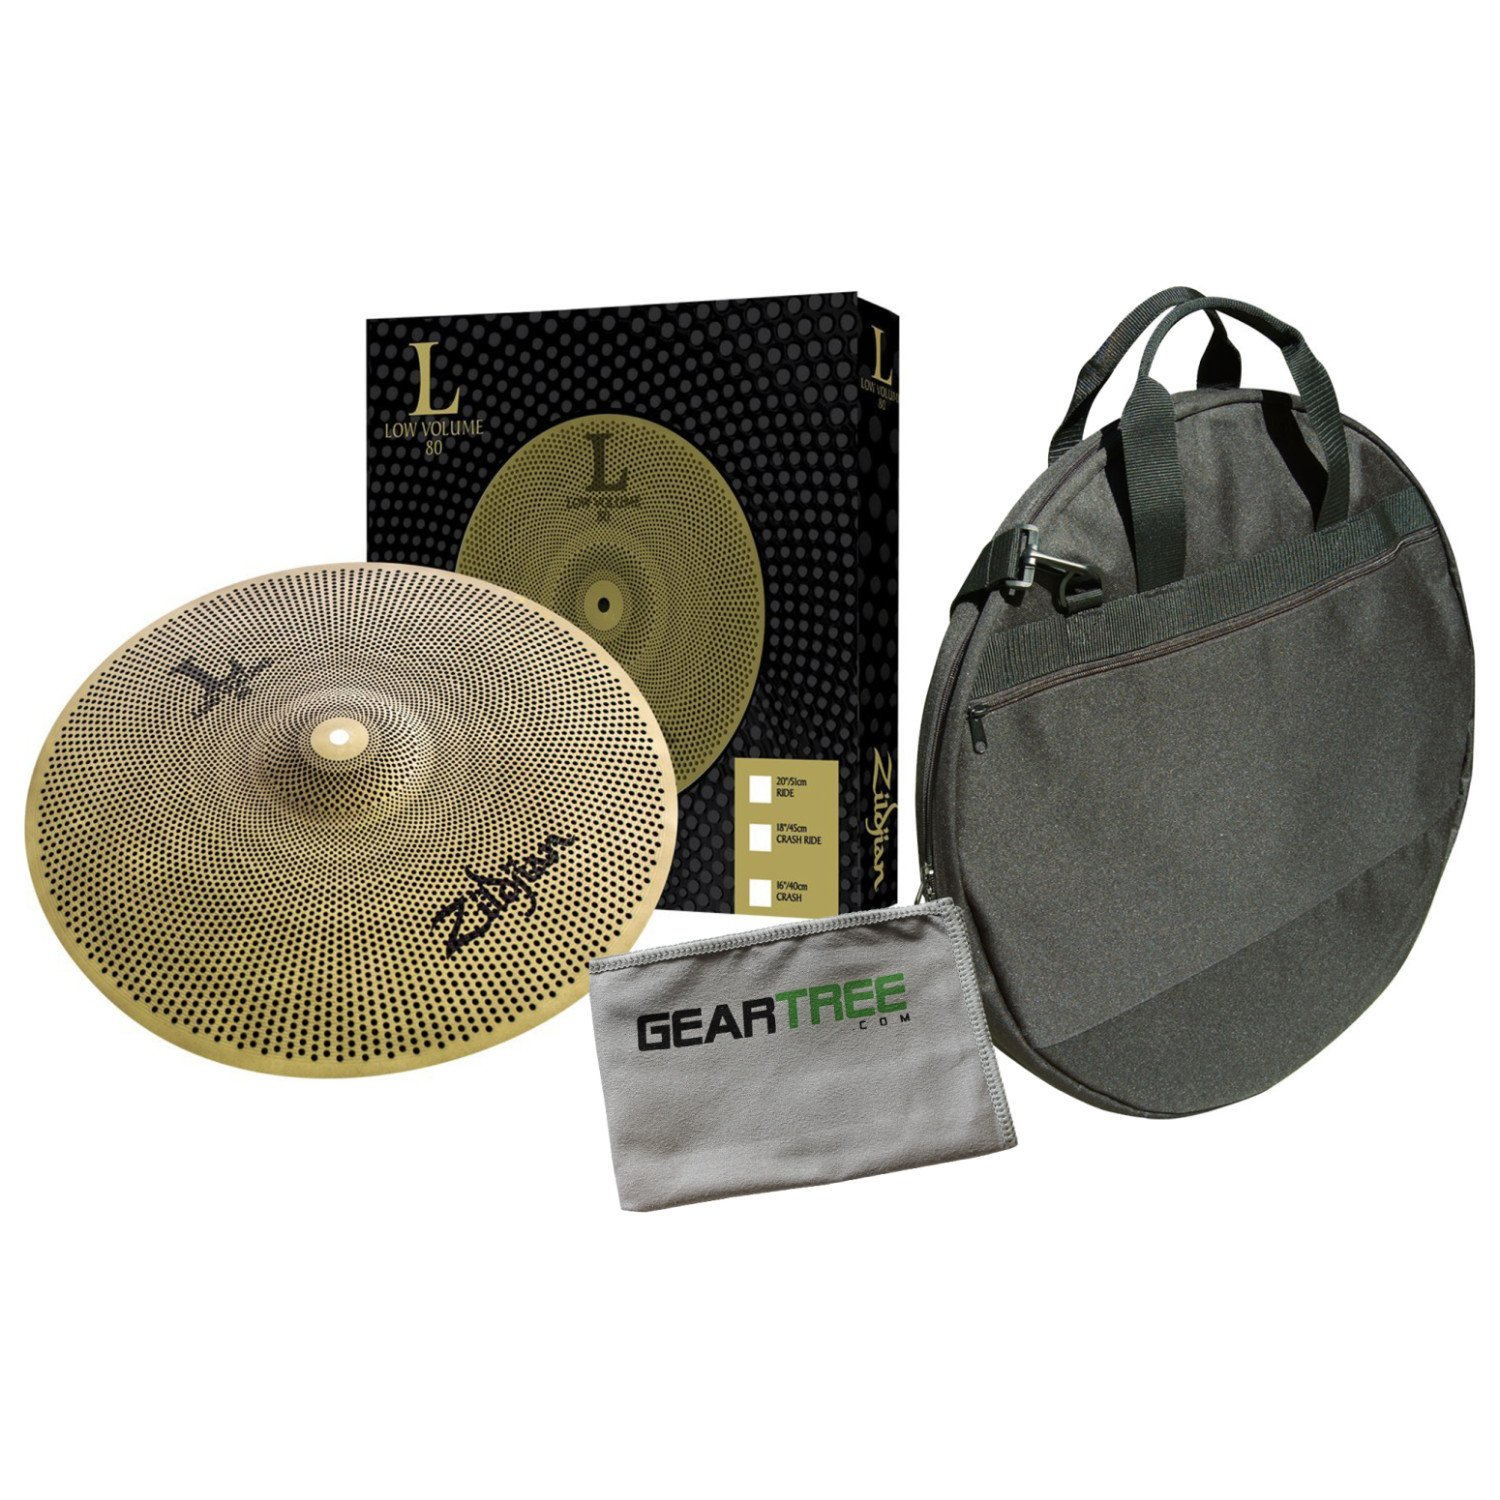 Zildjian L80 Low Volume 20 Inch Ride Cymbal w/Cleaning Cloth and Cymbal Bag by Avedis Zildjian Company